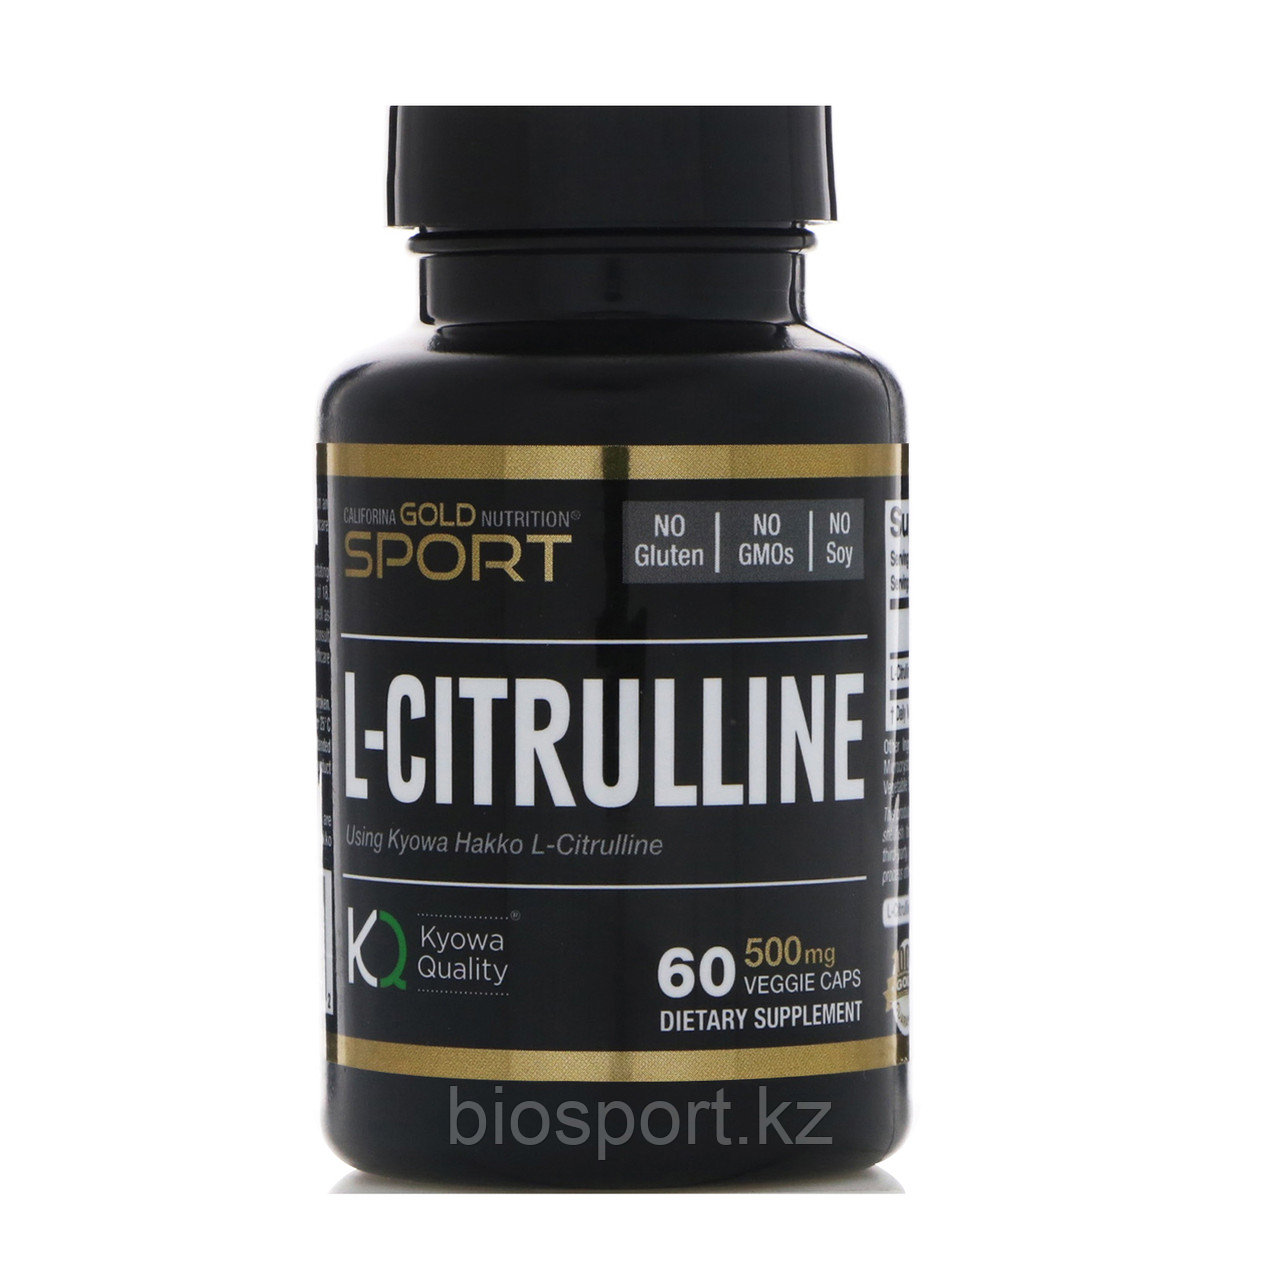 L-Citrulline - 60 caps (California Gold Nutrition)